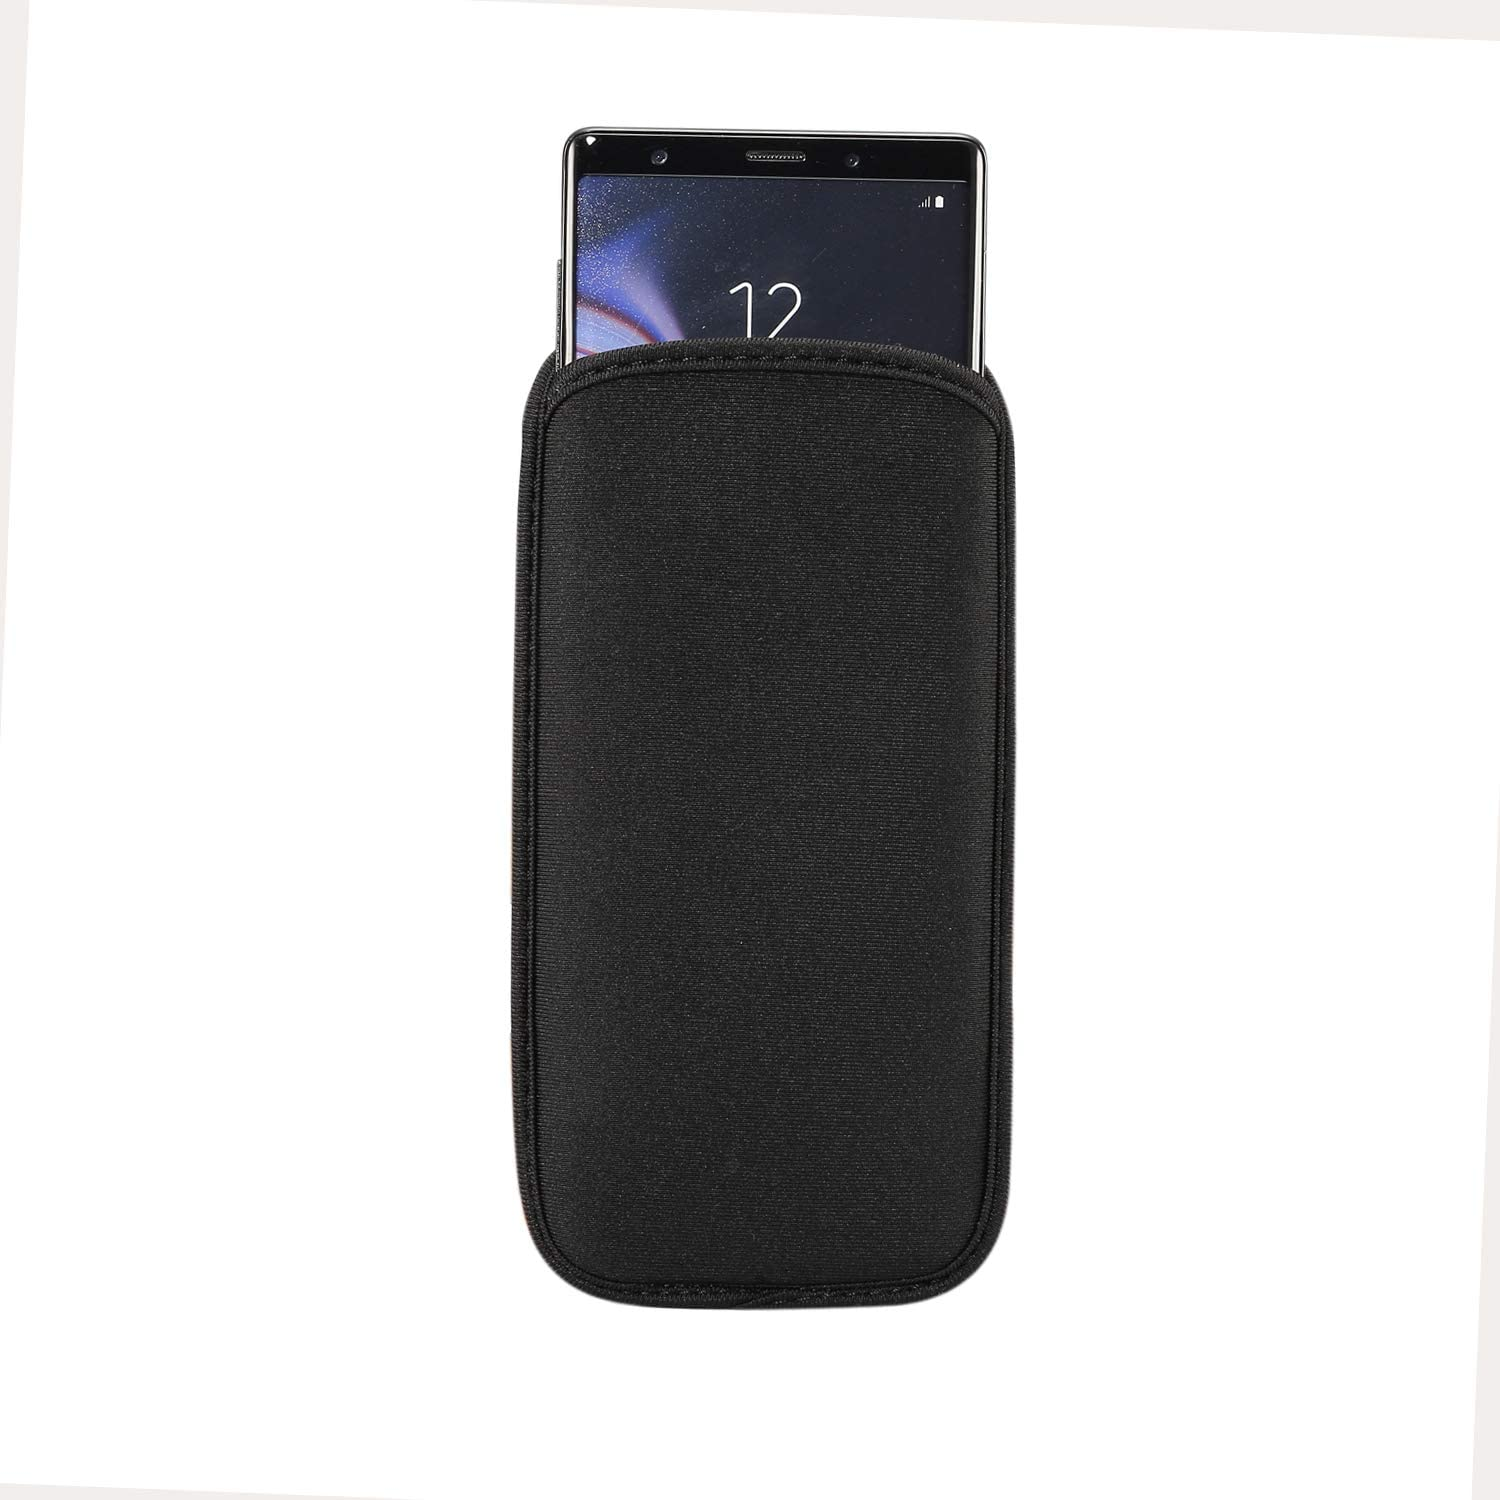 for Samsung S21,Note20,Note20 5G,Note20 Ultra,S10Lite,Note10Lite,Note10+,s20+,A71 5G Phone Bag, Universal Neoprene Shockproof Pouch Sleeve Case for iPhone 11 Pro Max,XS Max,6s Plus